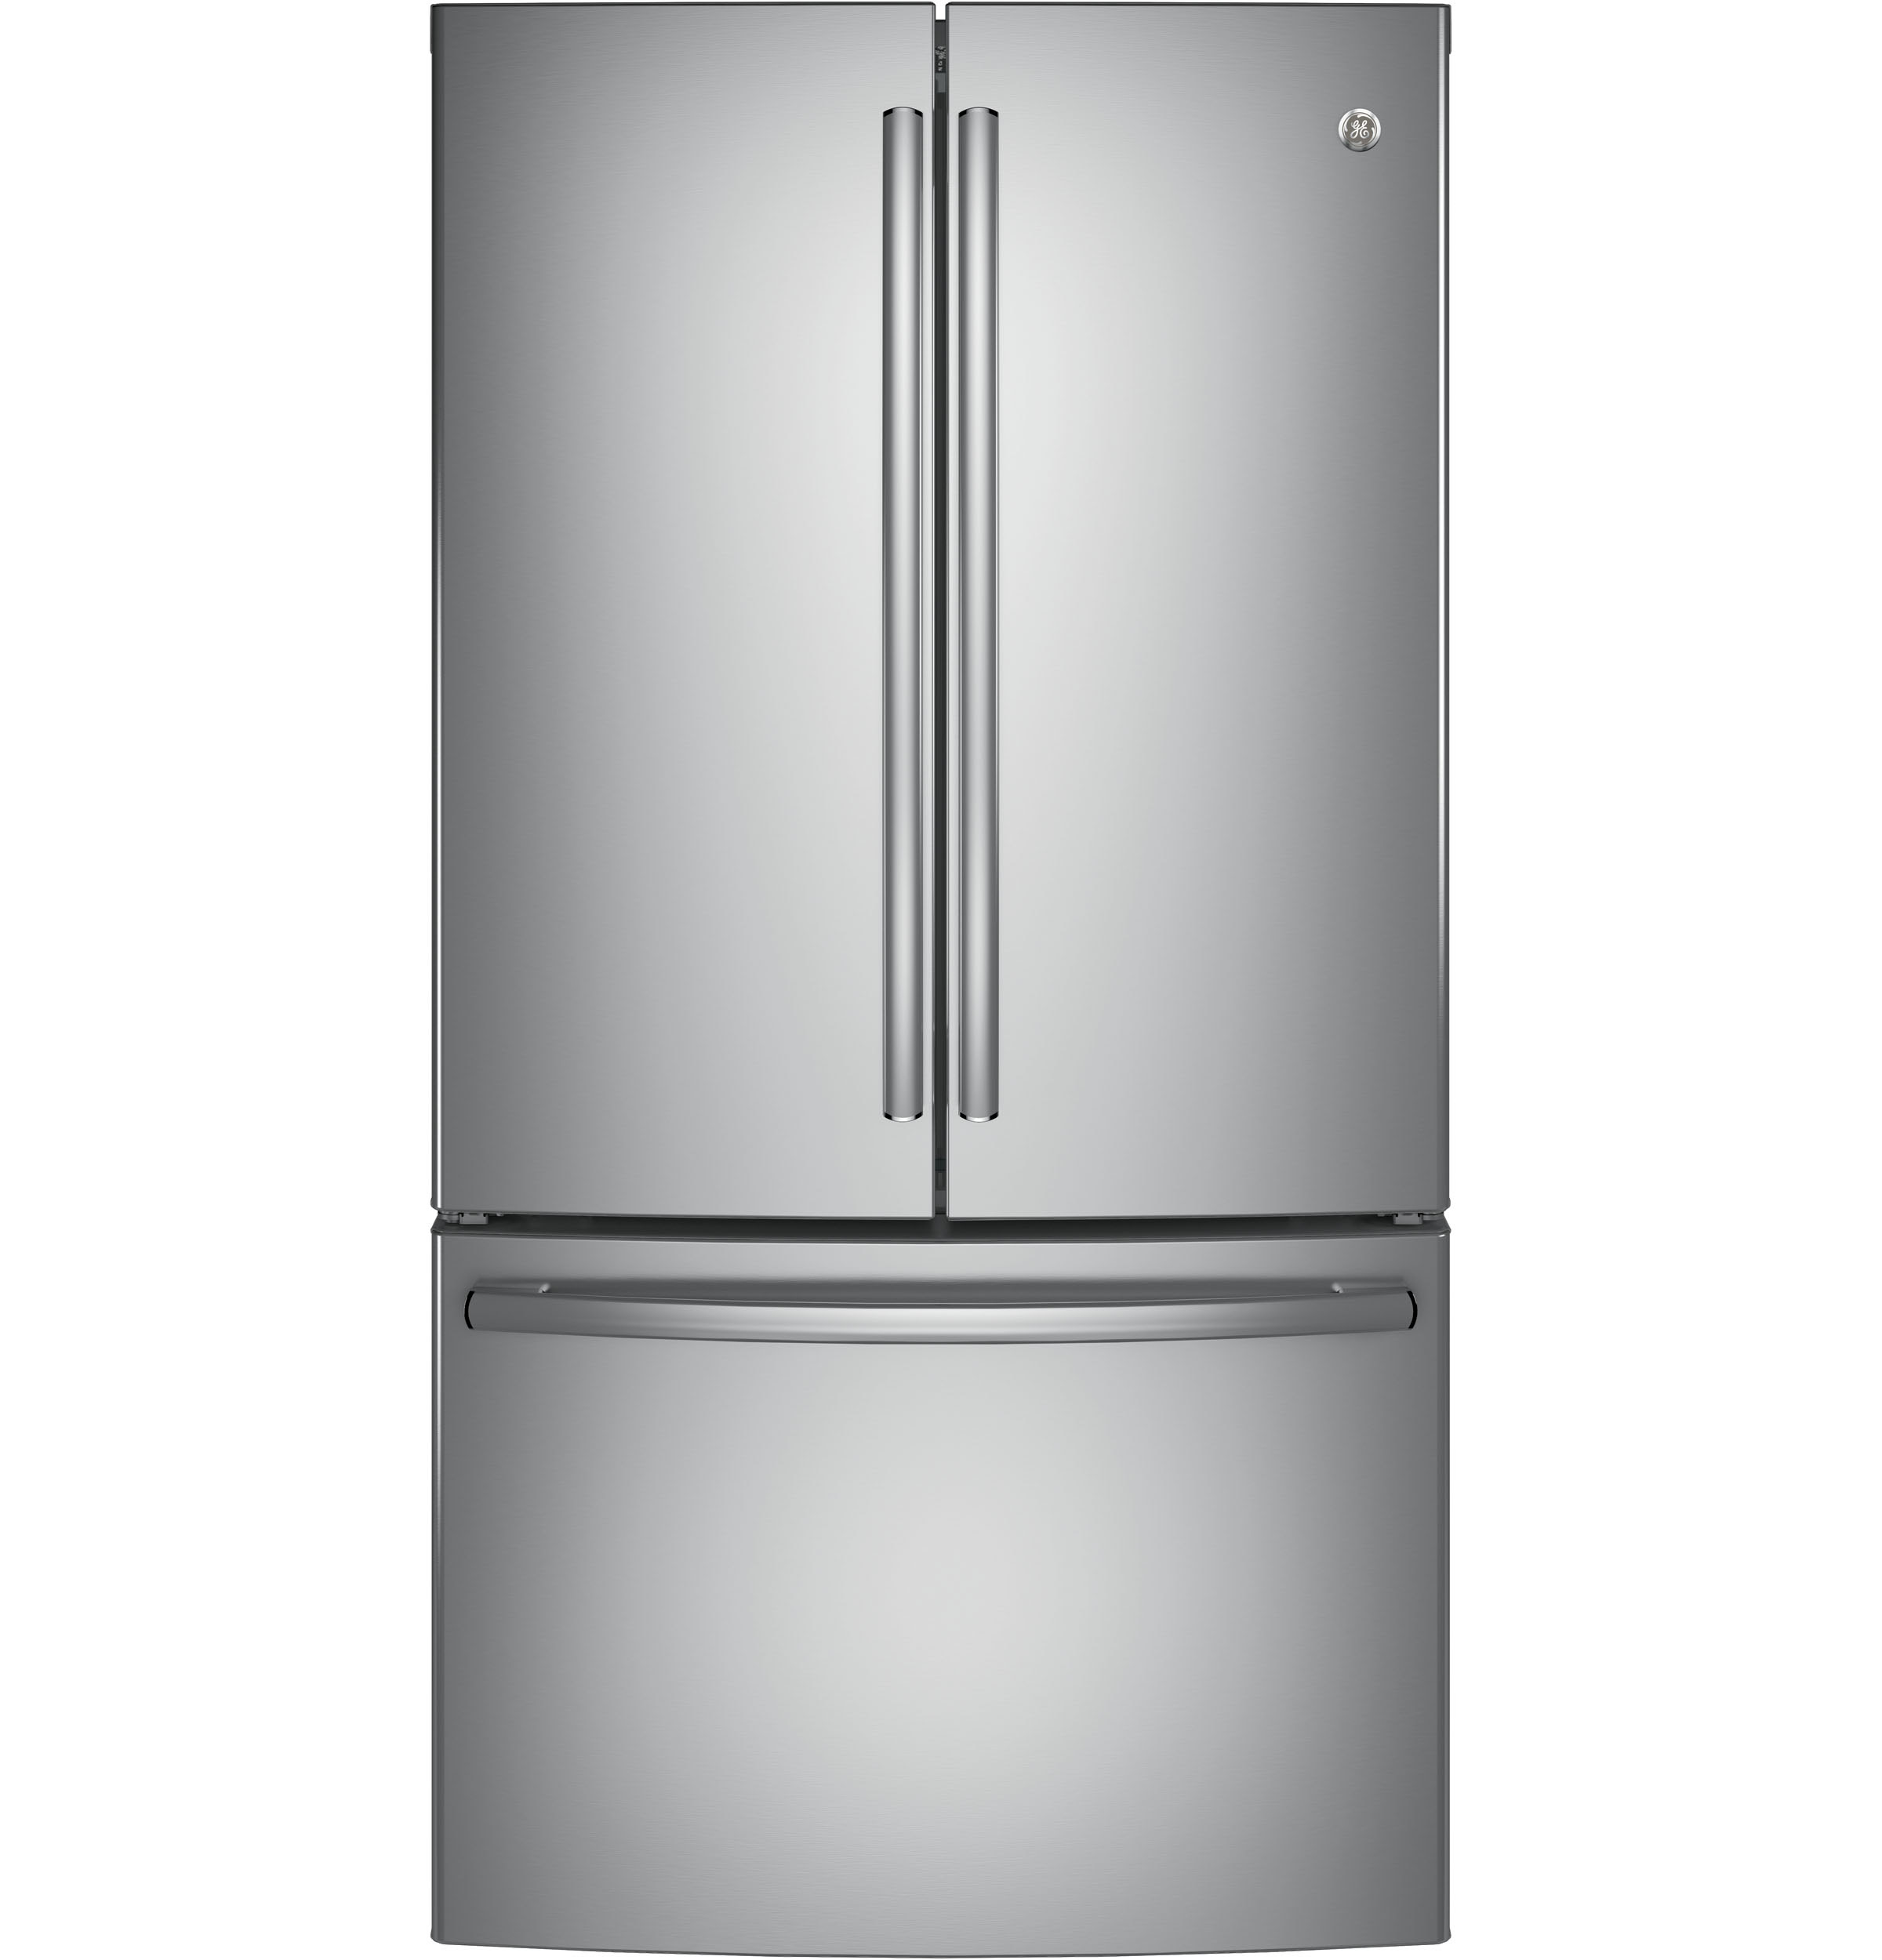 GE ENERGY STAR 28 5 Cu Ft French Door Refrigerator